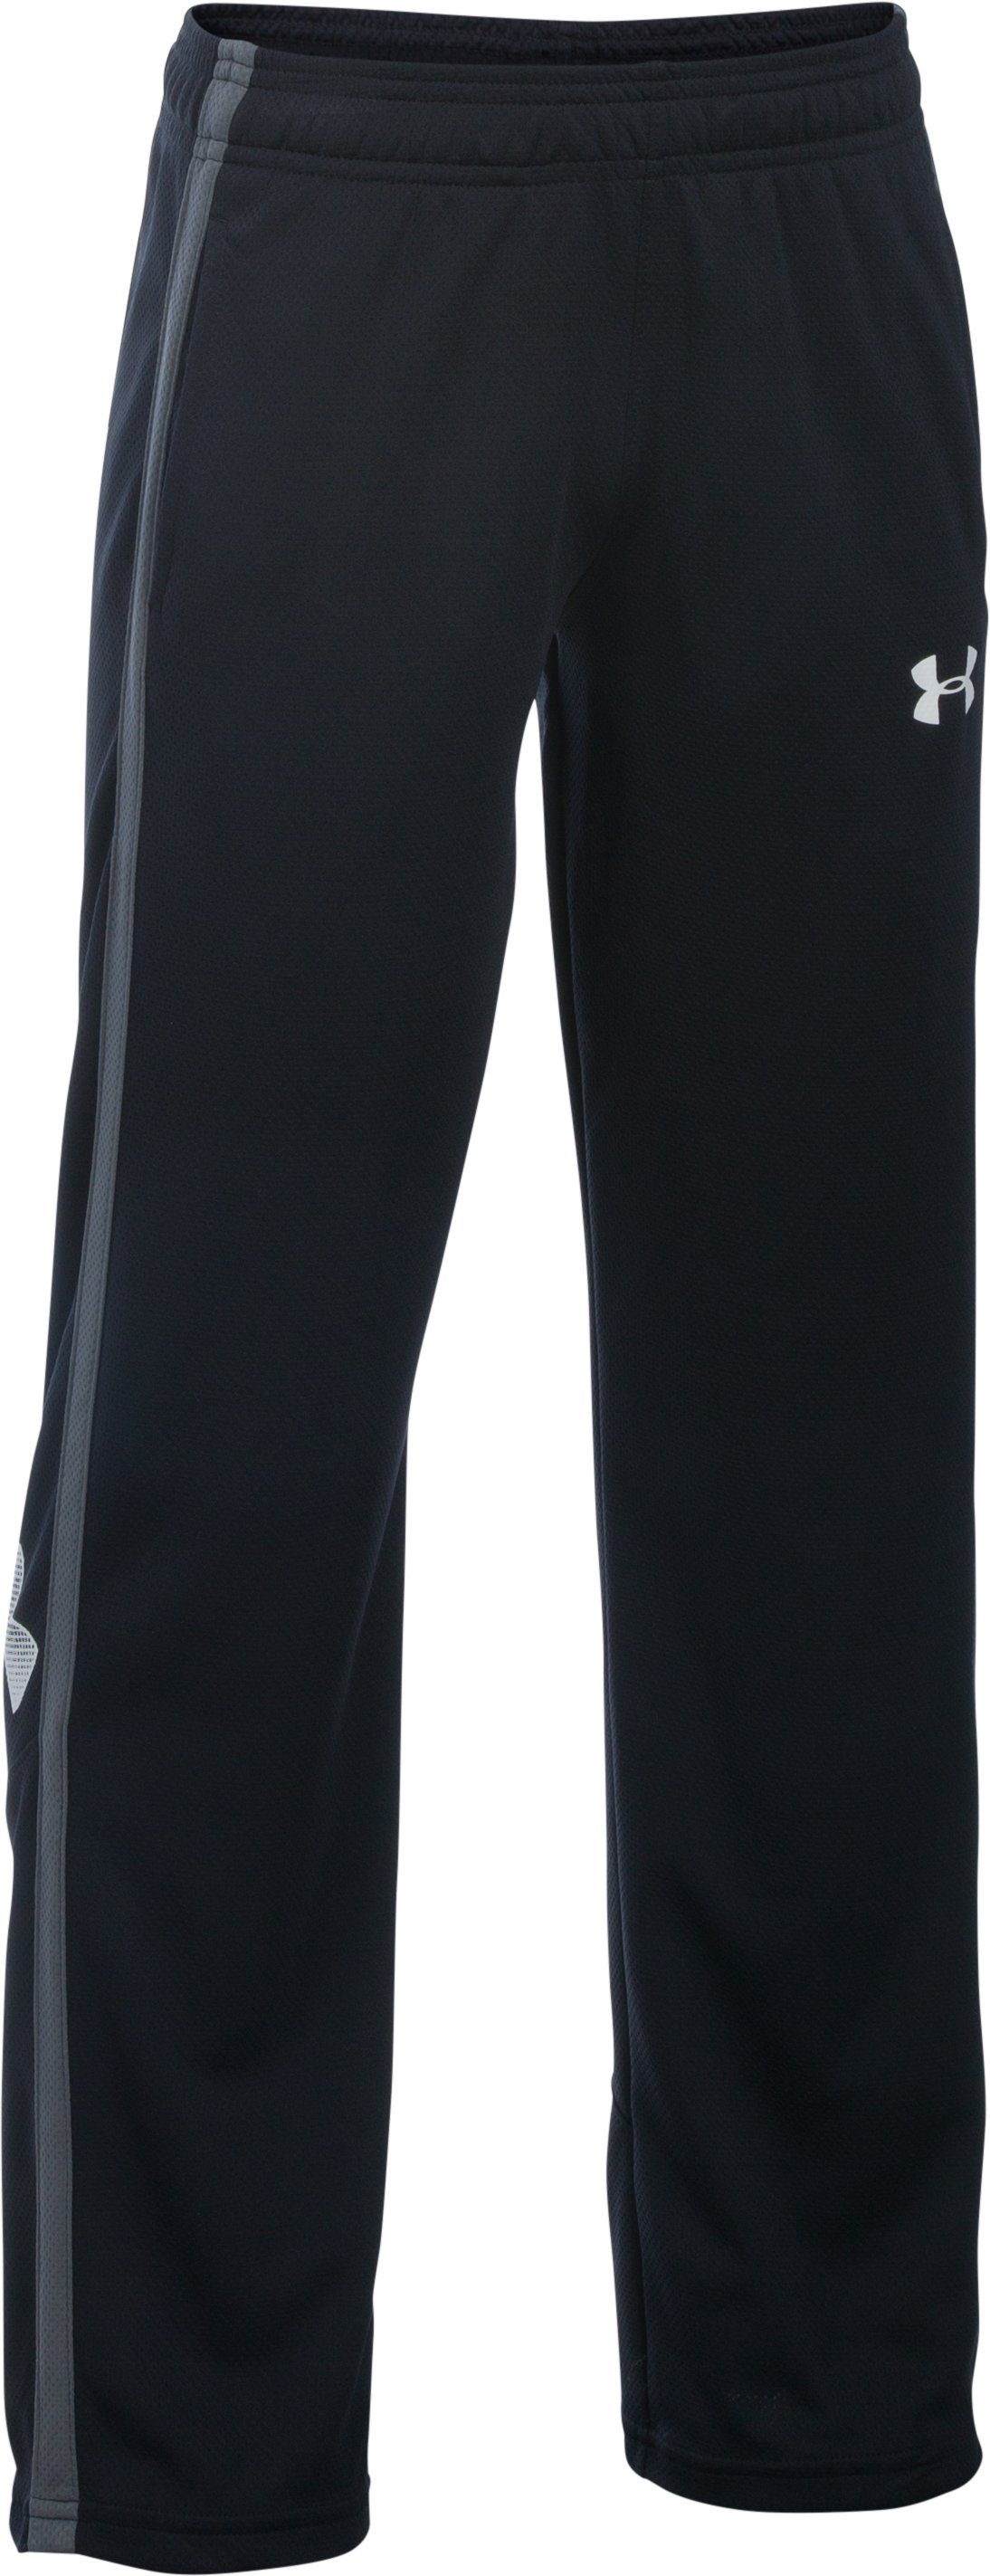 Boys' UA Champ Warm-Up Pants, Black